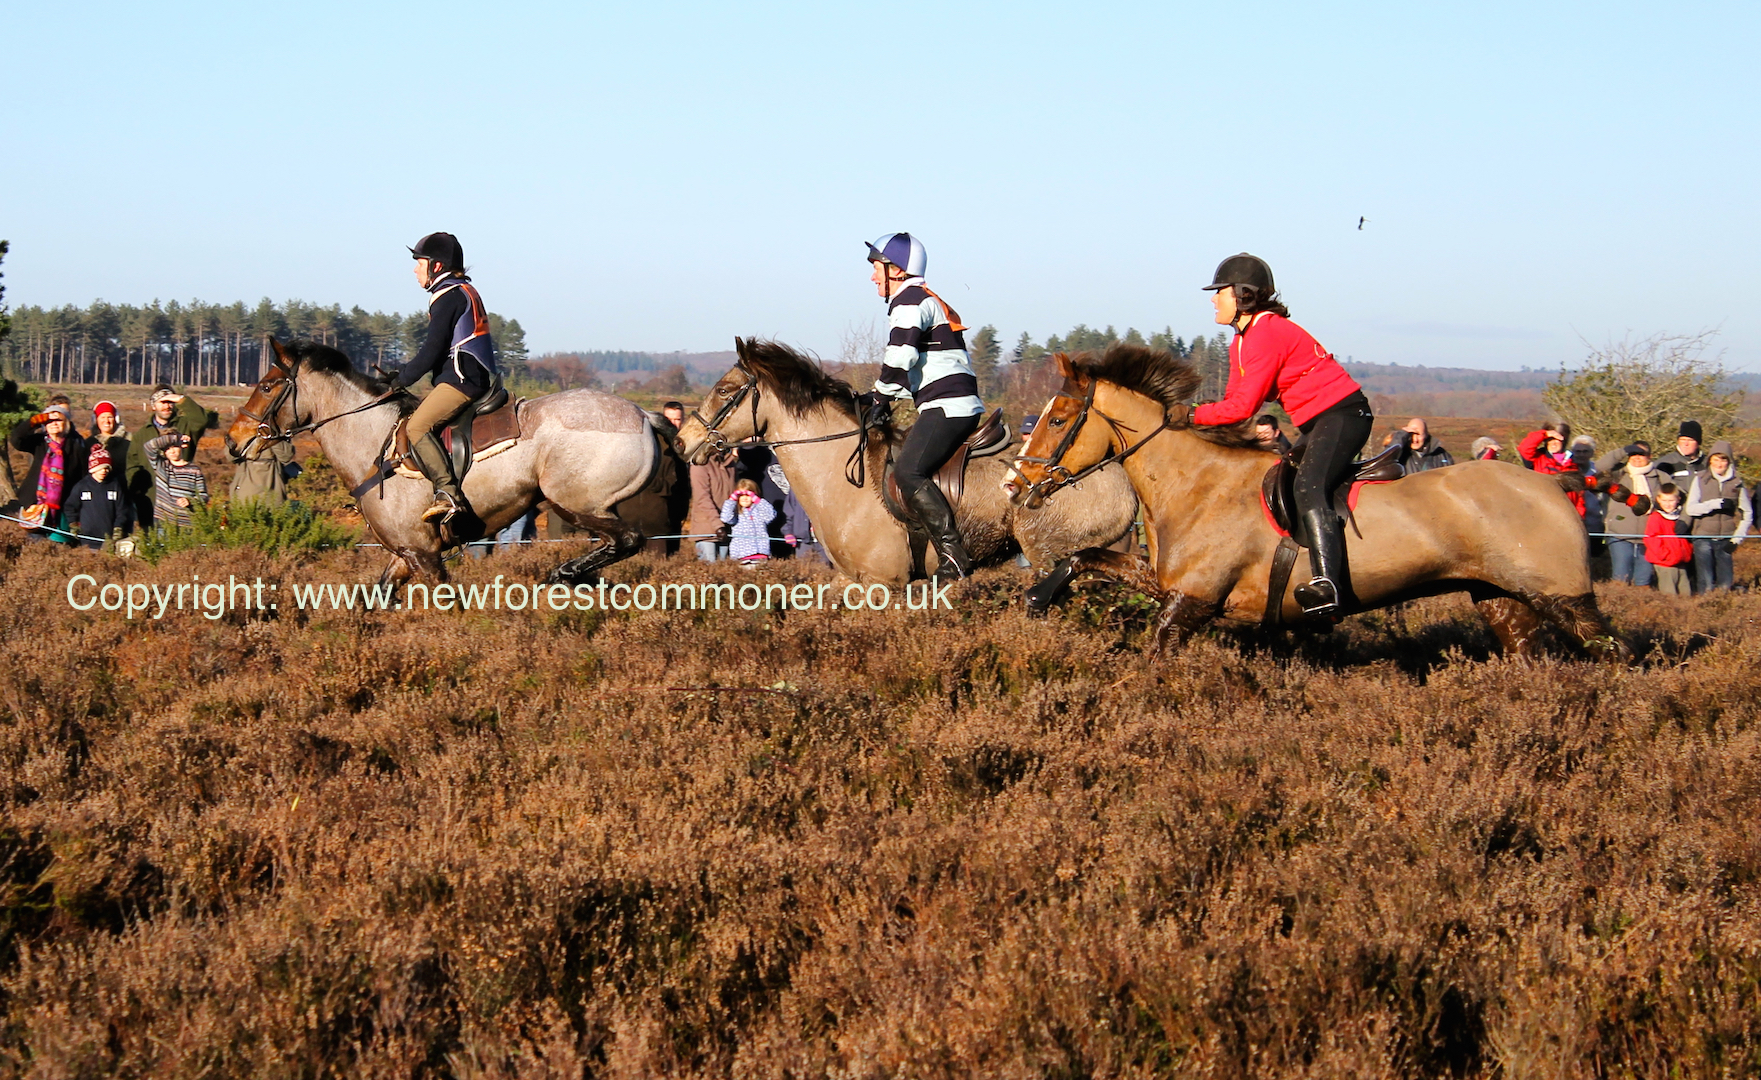 The Boxing Day point-to-point has a full race card including veteran's, children's, and ladies races.